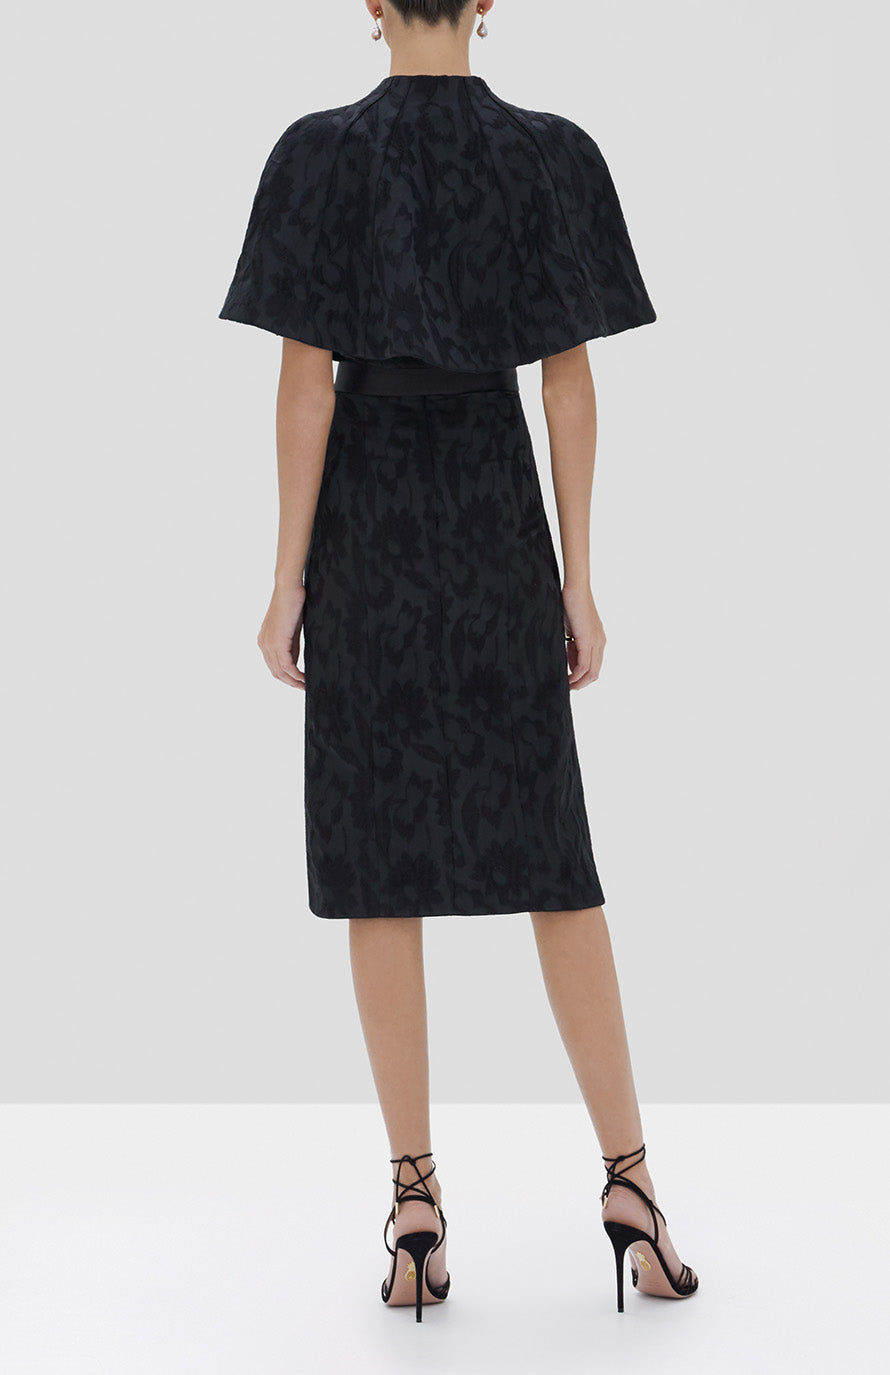 Alexis Fiah Cape and Isotta Dress in Black Floral Jacquard from the Fall Winter 2019 Collection - Rear View